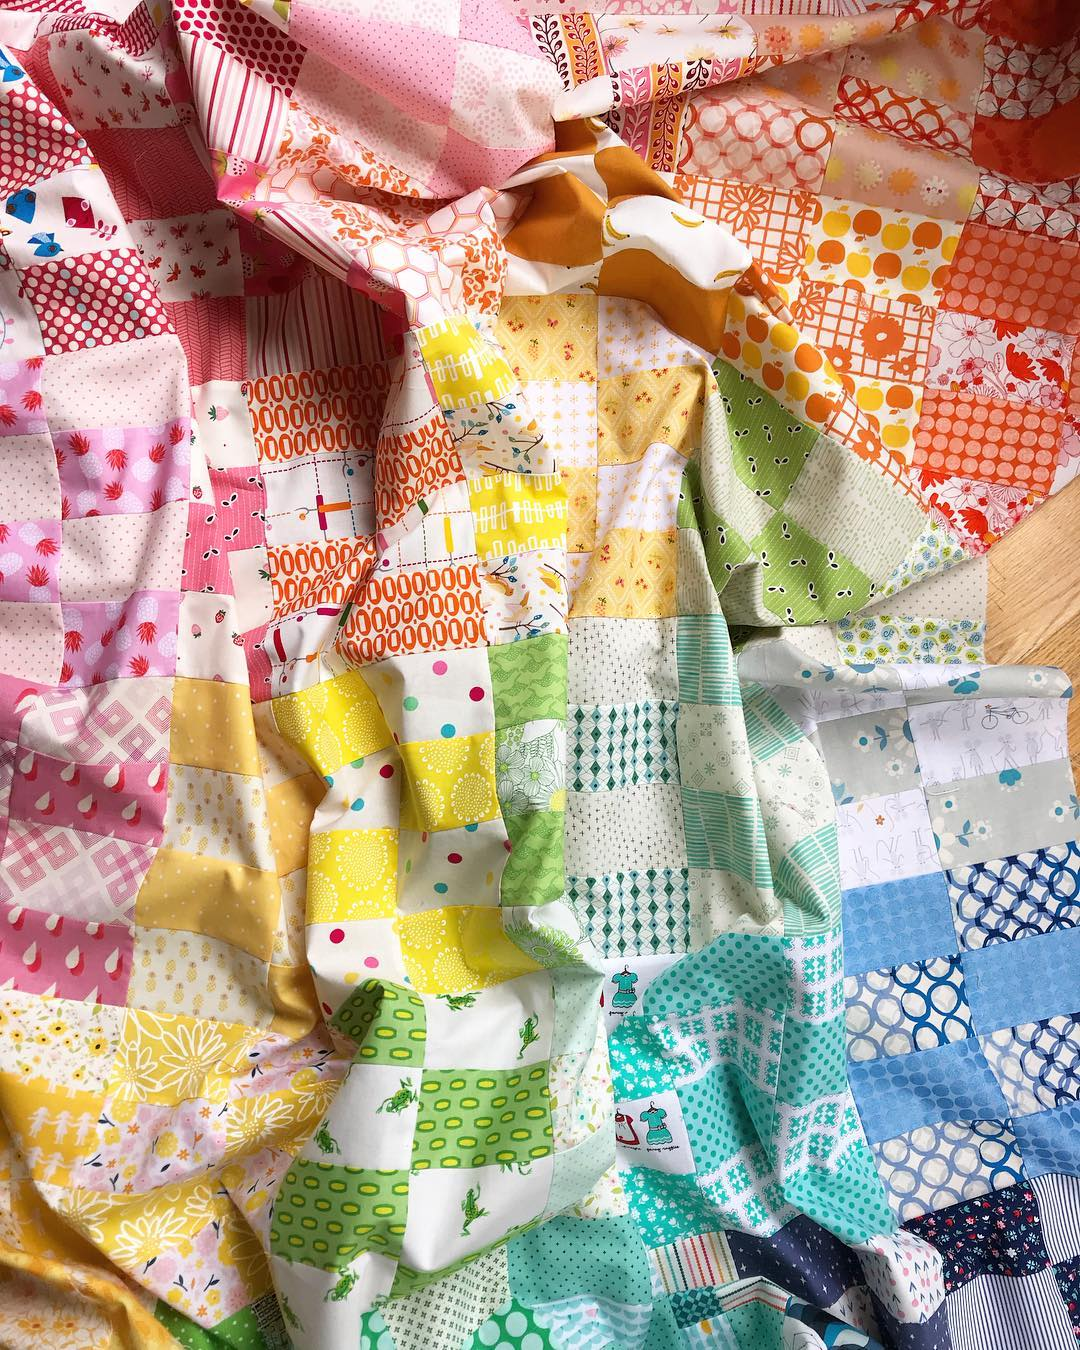 2x4 quilt by Maker Valley / Holly Lesue. Free quilt pattern by Film in the Fridge